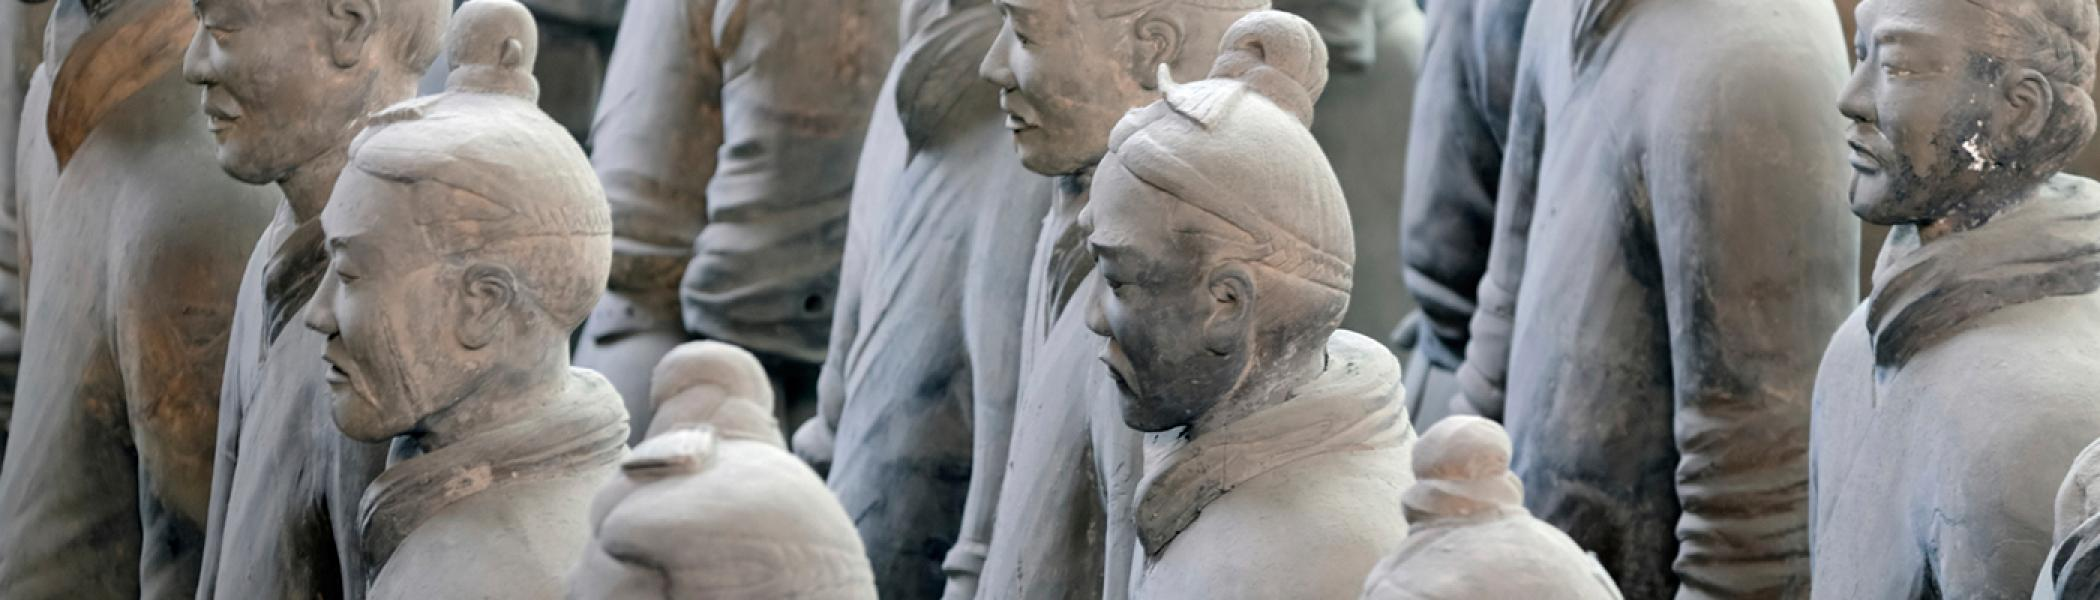 stone statues of chinese men from ancient cultures studied in the archaeology program at Trent university